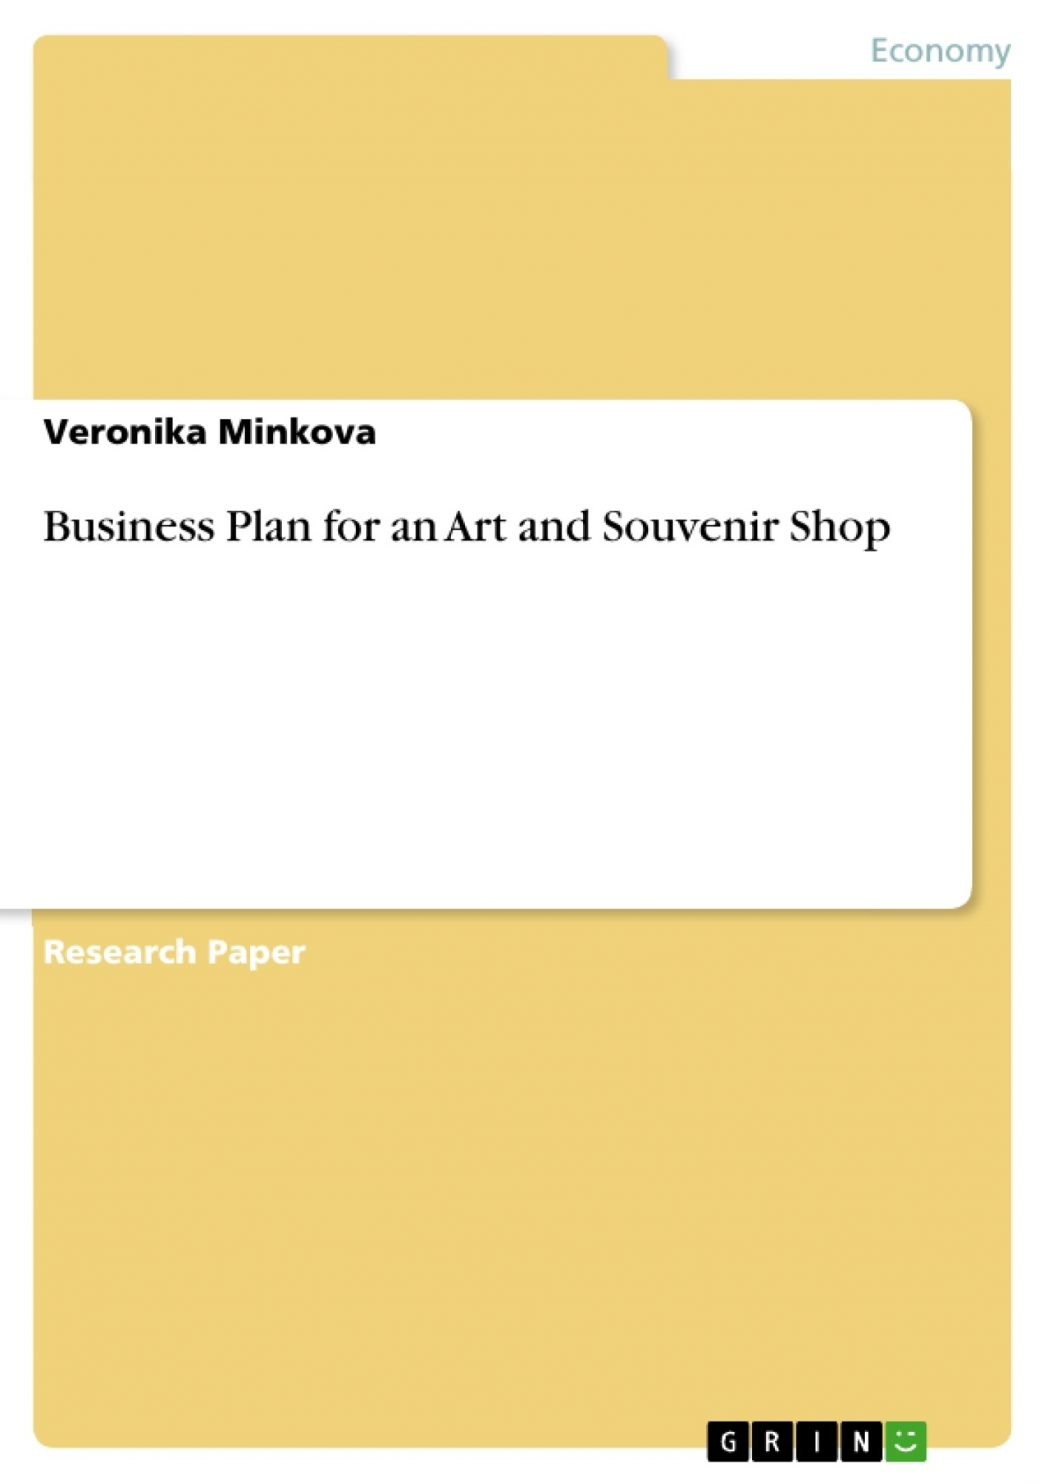 012 Sphere With The Word Business Plan On White Background Stock Online Art Gallery For An And Souvenir Shop Publish Your Masters Pdf Example Fin Ppt Contemporary Free Template Research Fantastic Paper Check Plagiarism Of Full